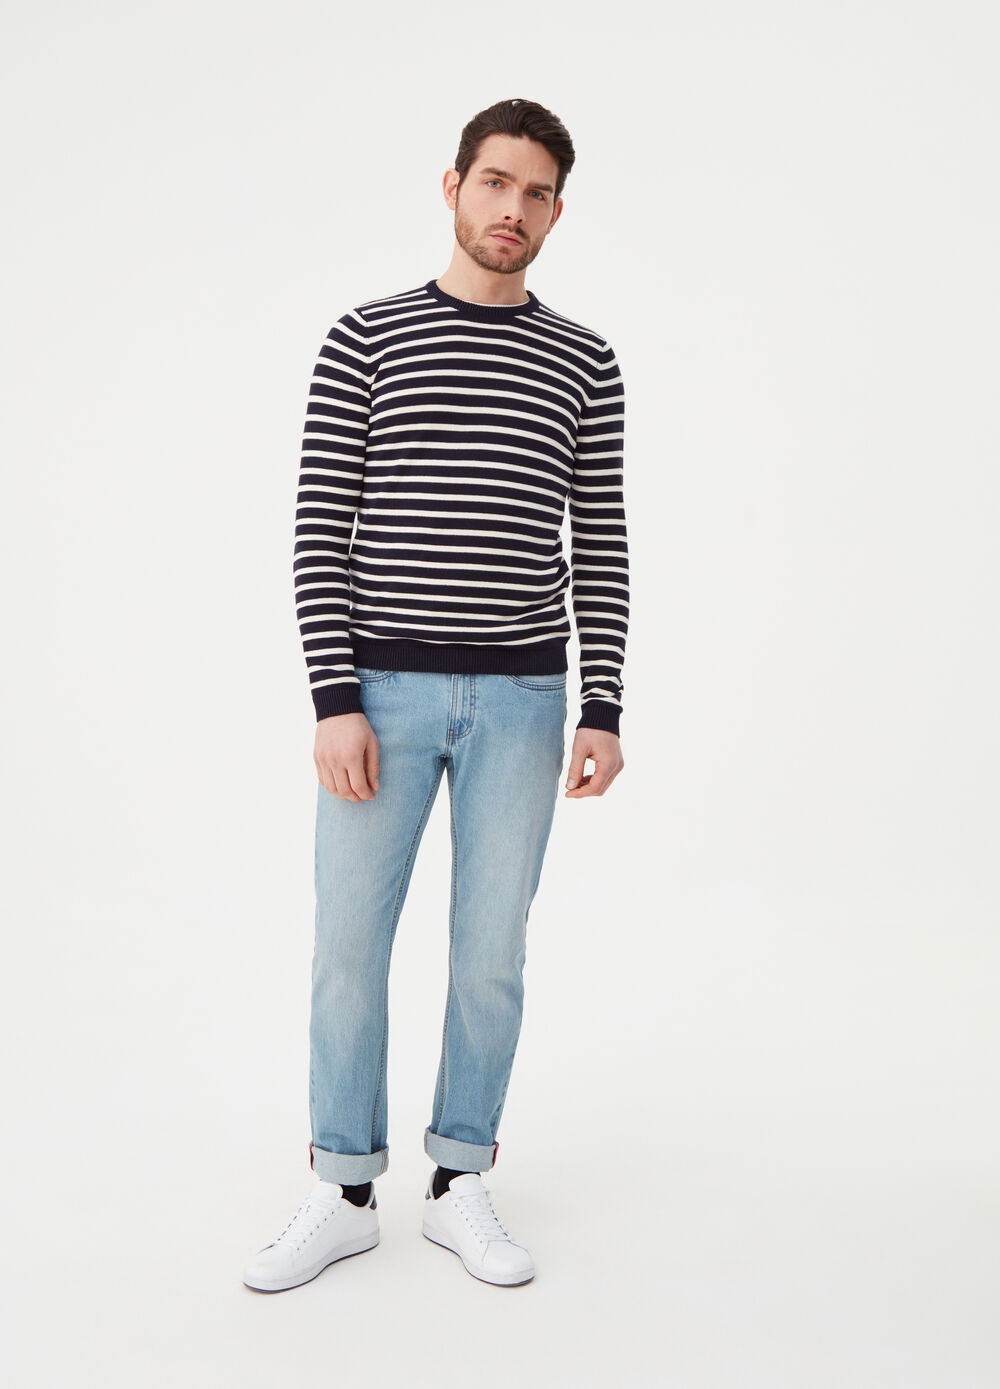 Knitted pullover with striped pattern